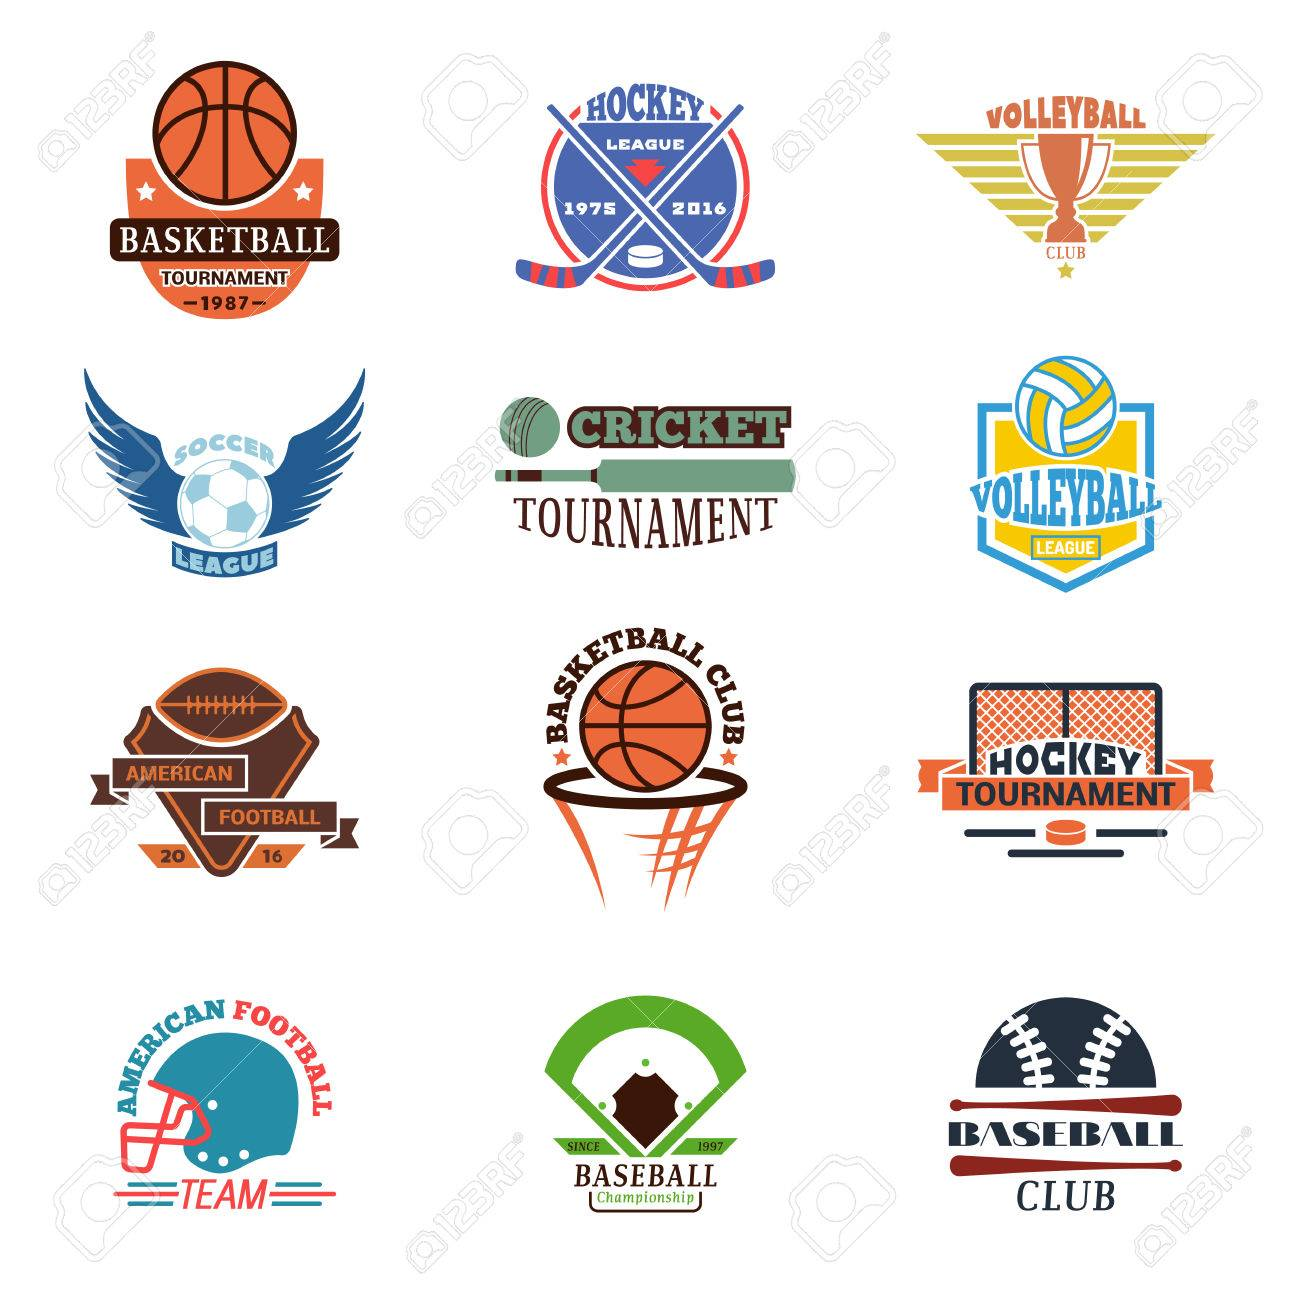 Template Logos For Sports Teams With Different Balls And Symbols